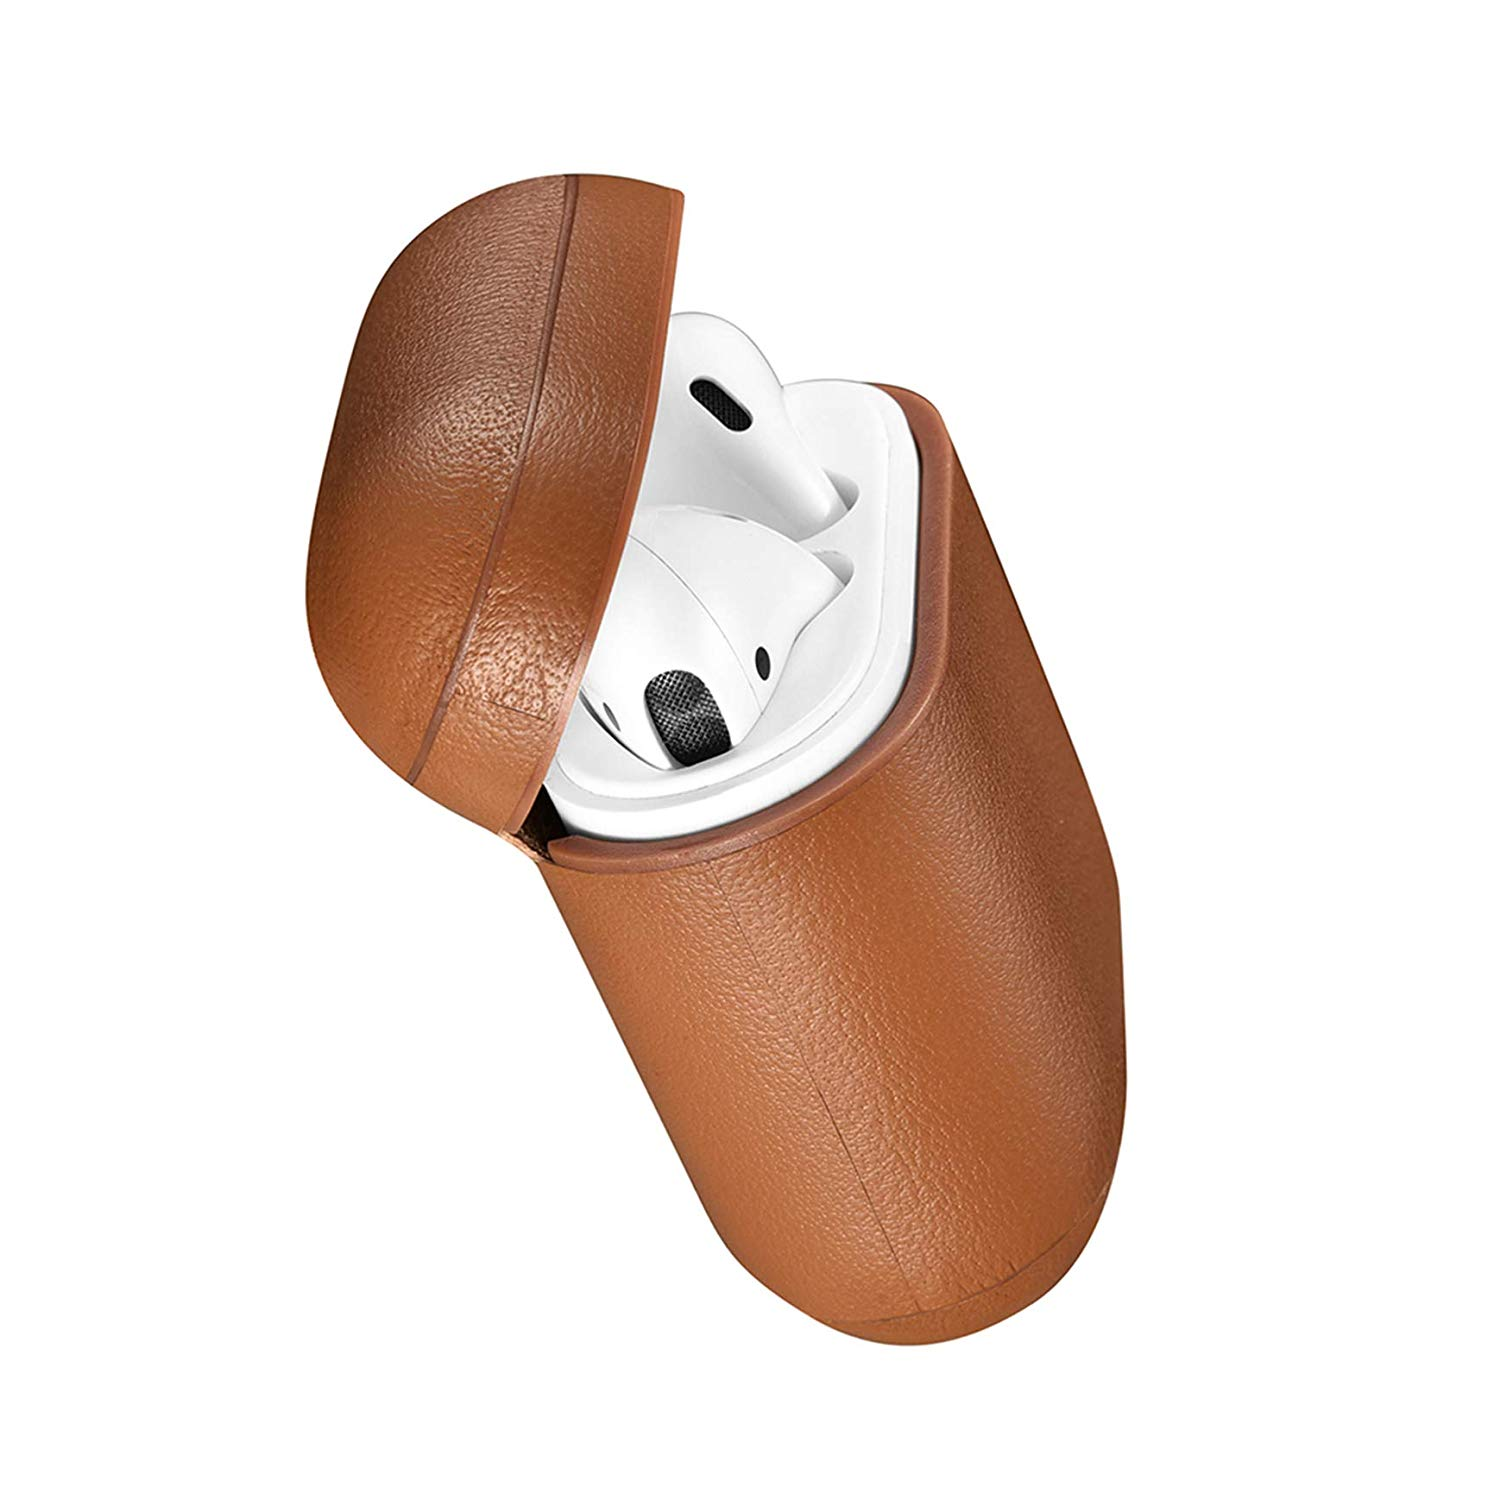 Leather Apple AirPods Case 1